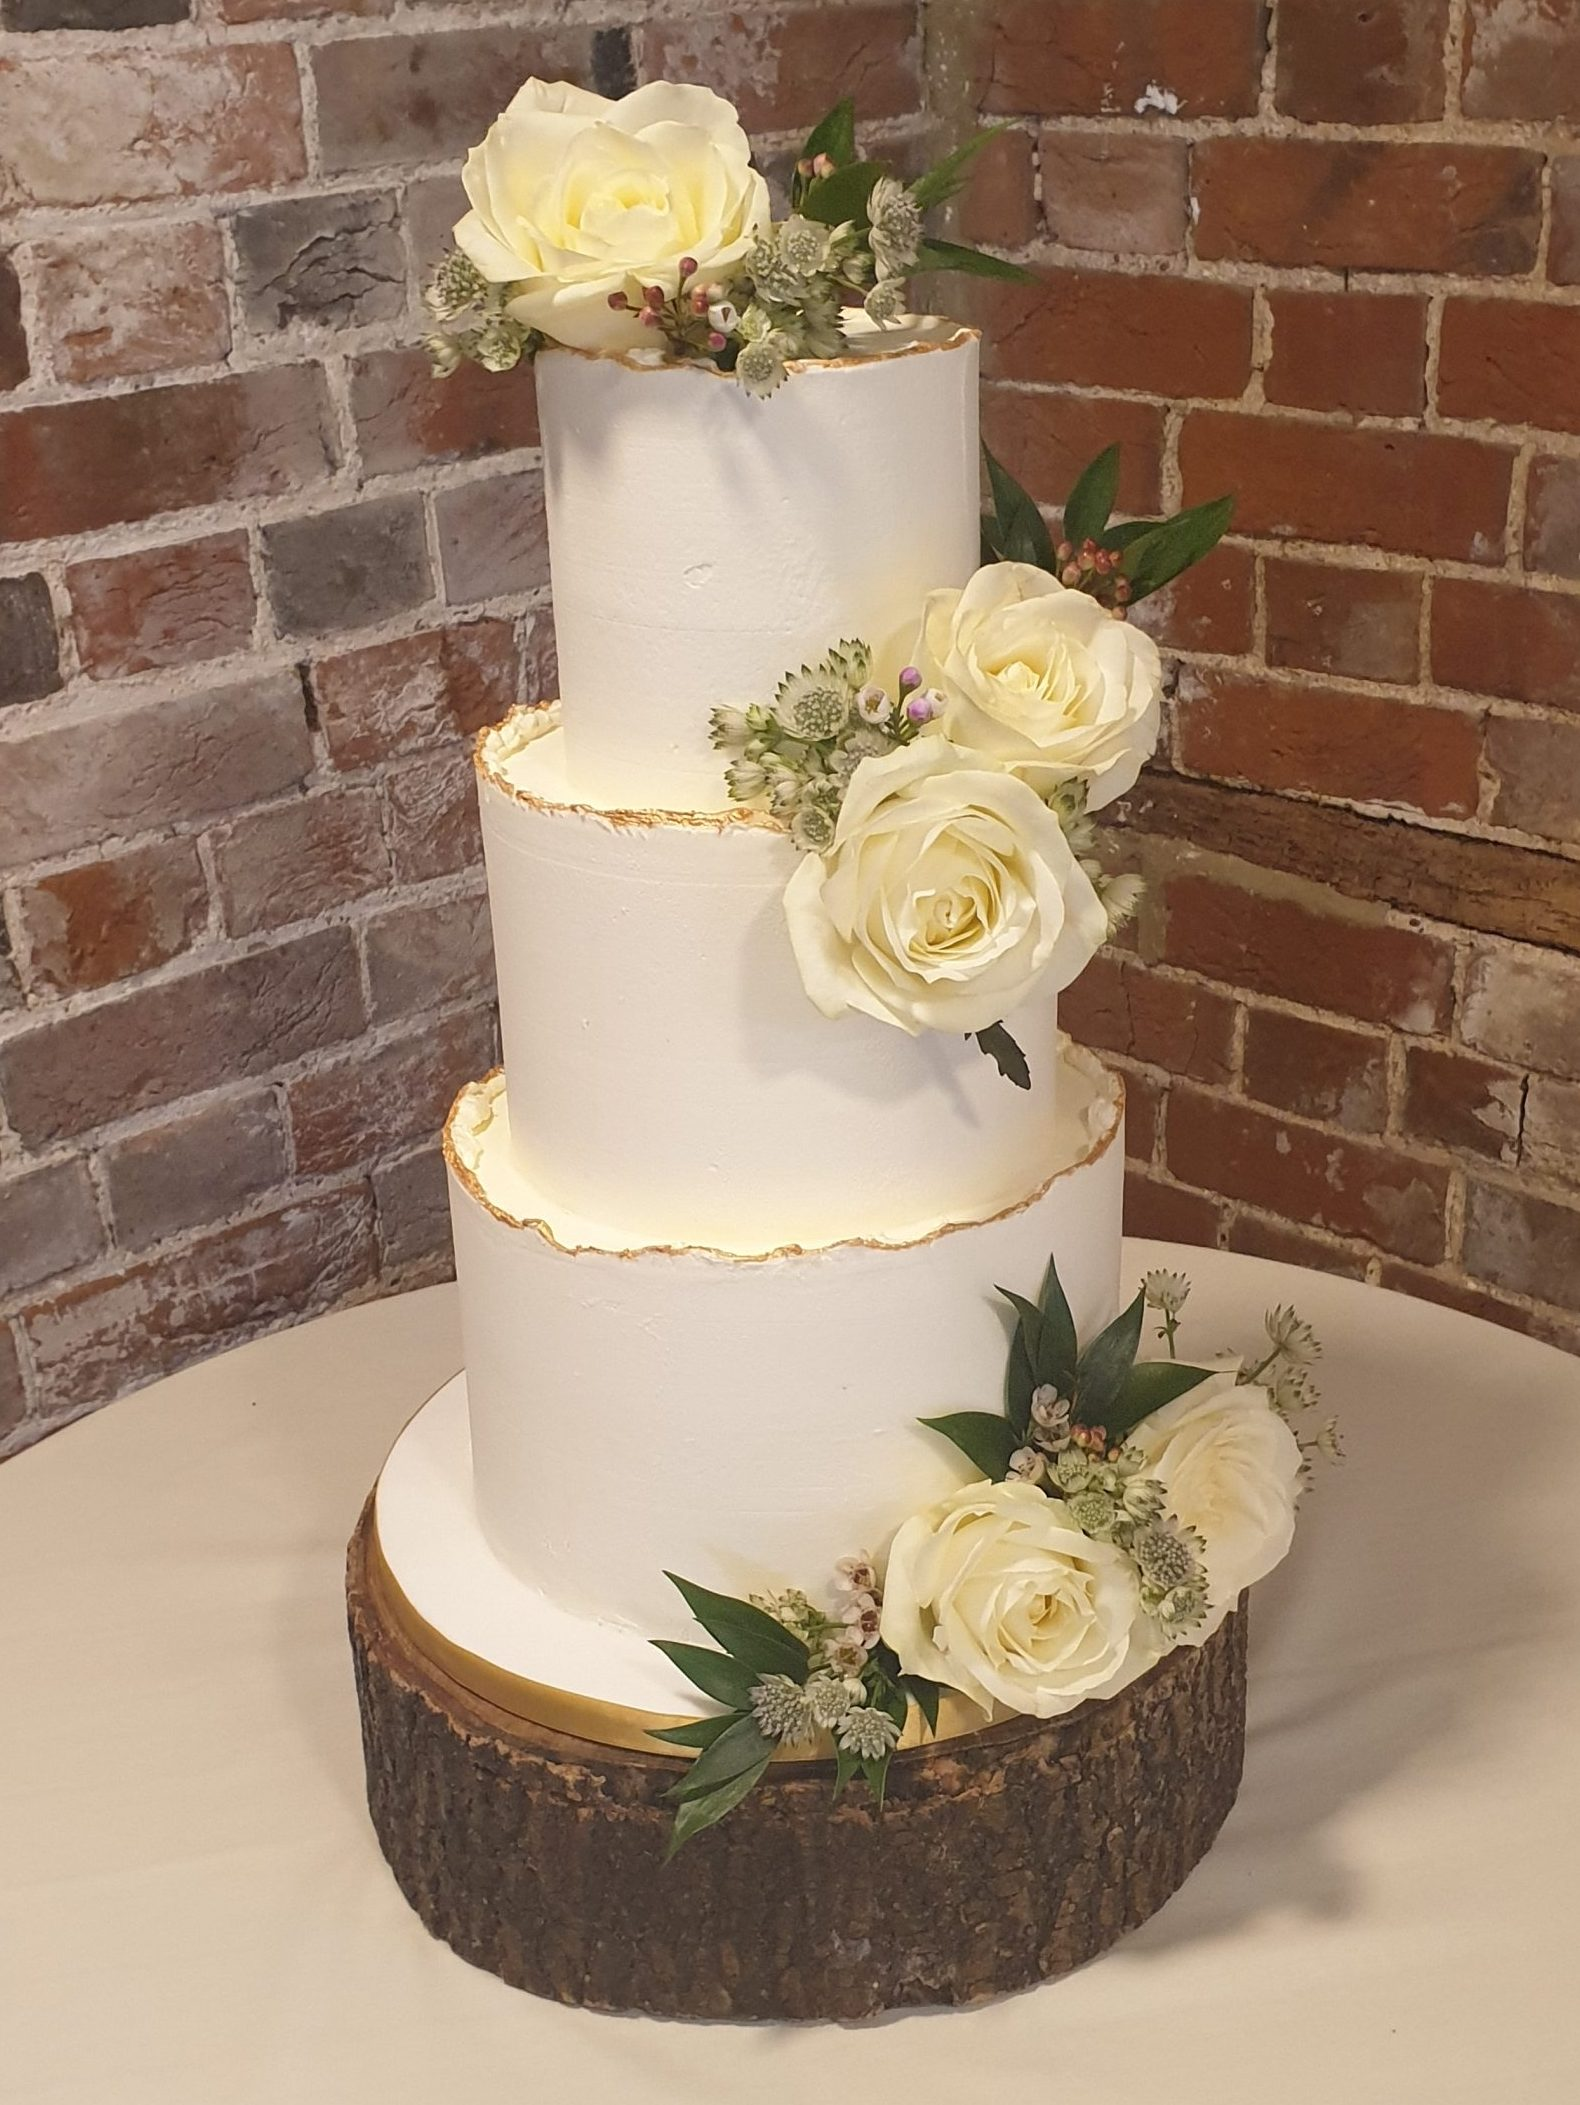 buttercream wedding cake fresh flowers gold weddingcake gaynes park epping essex wedding venue